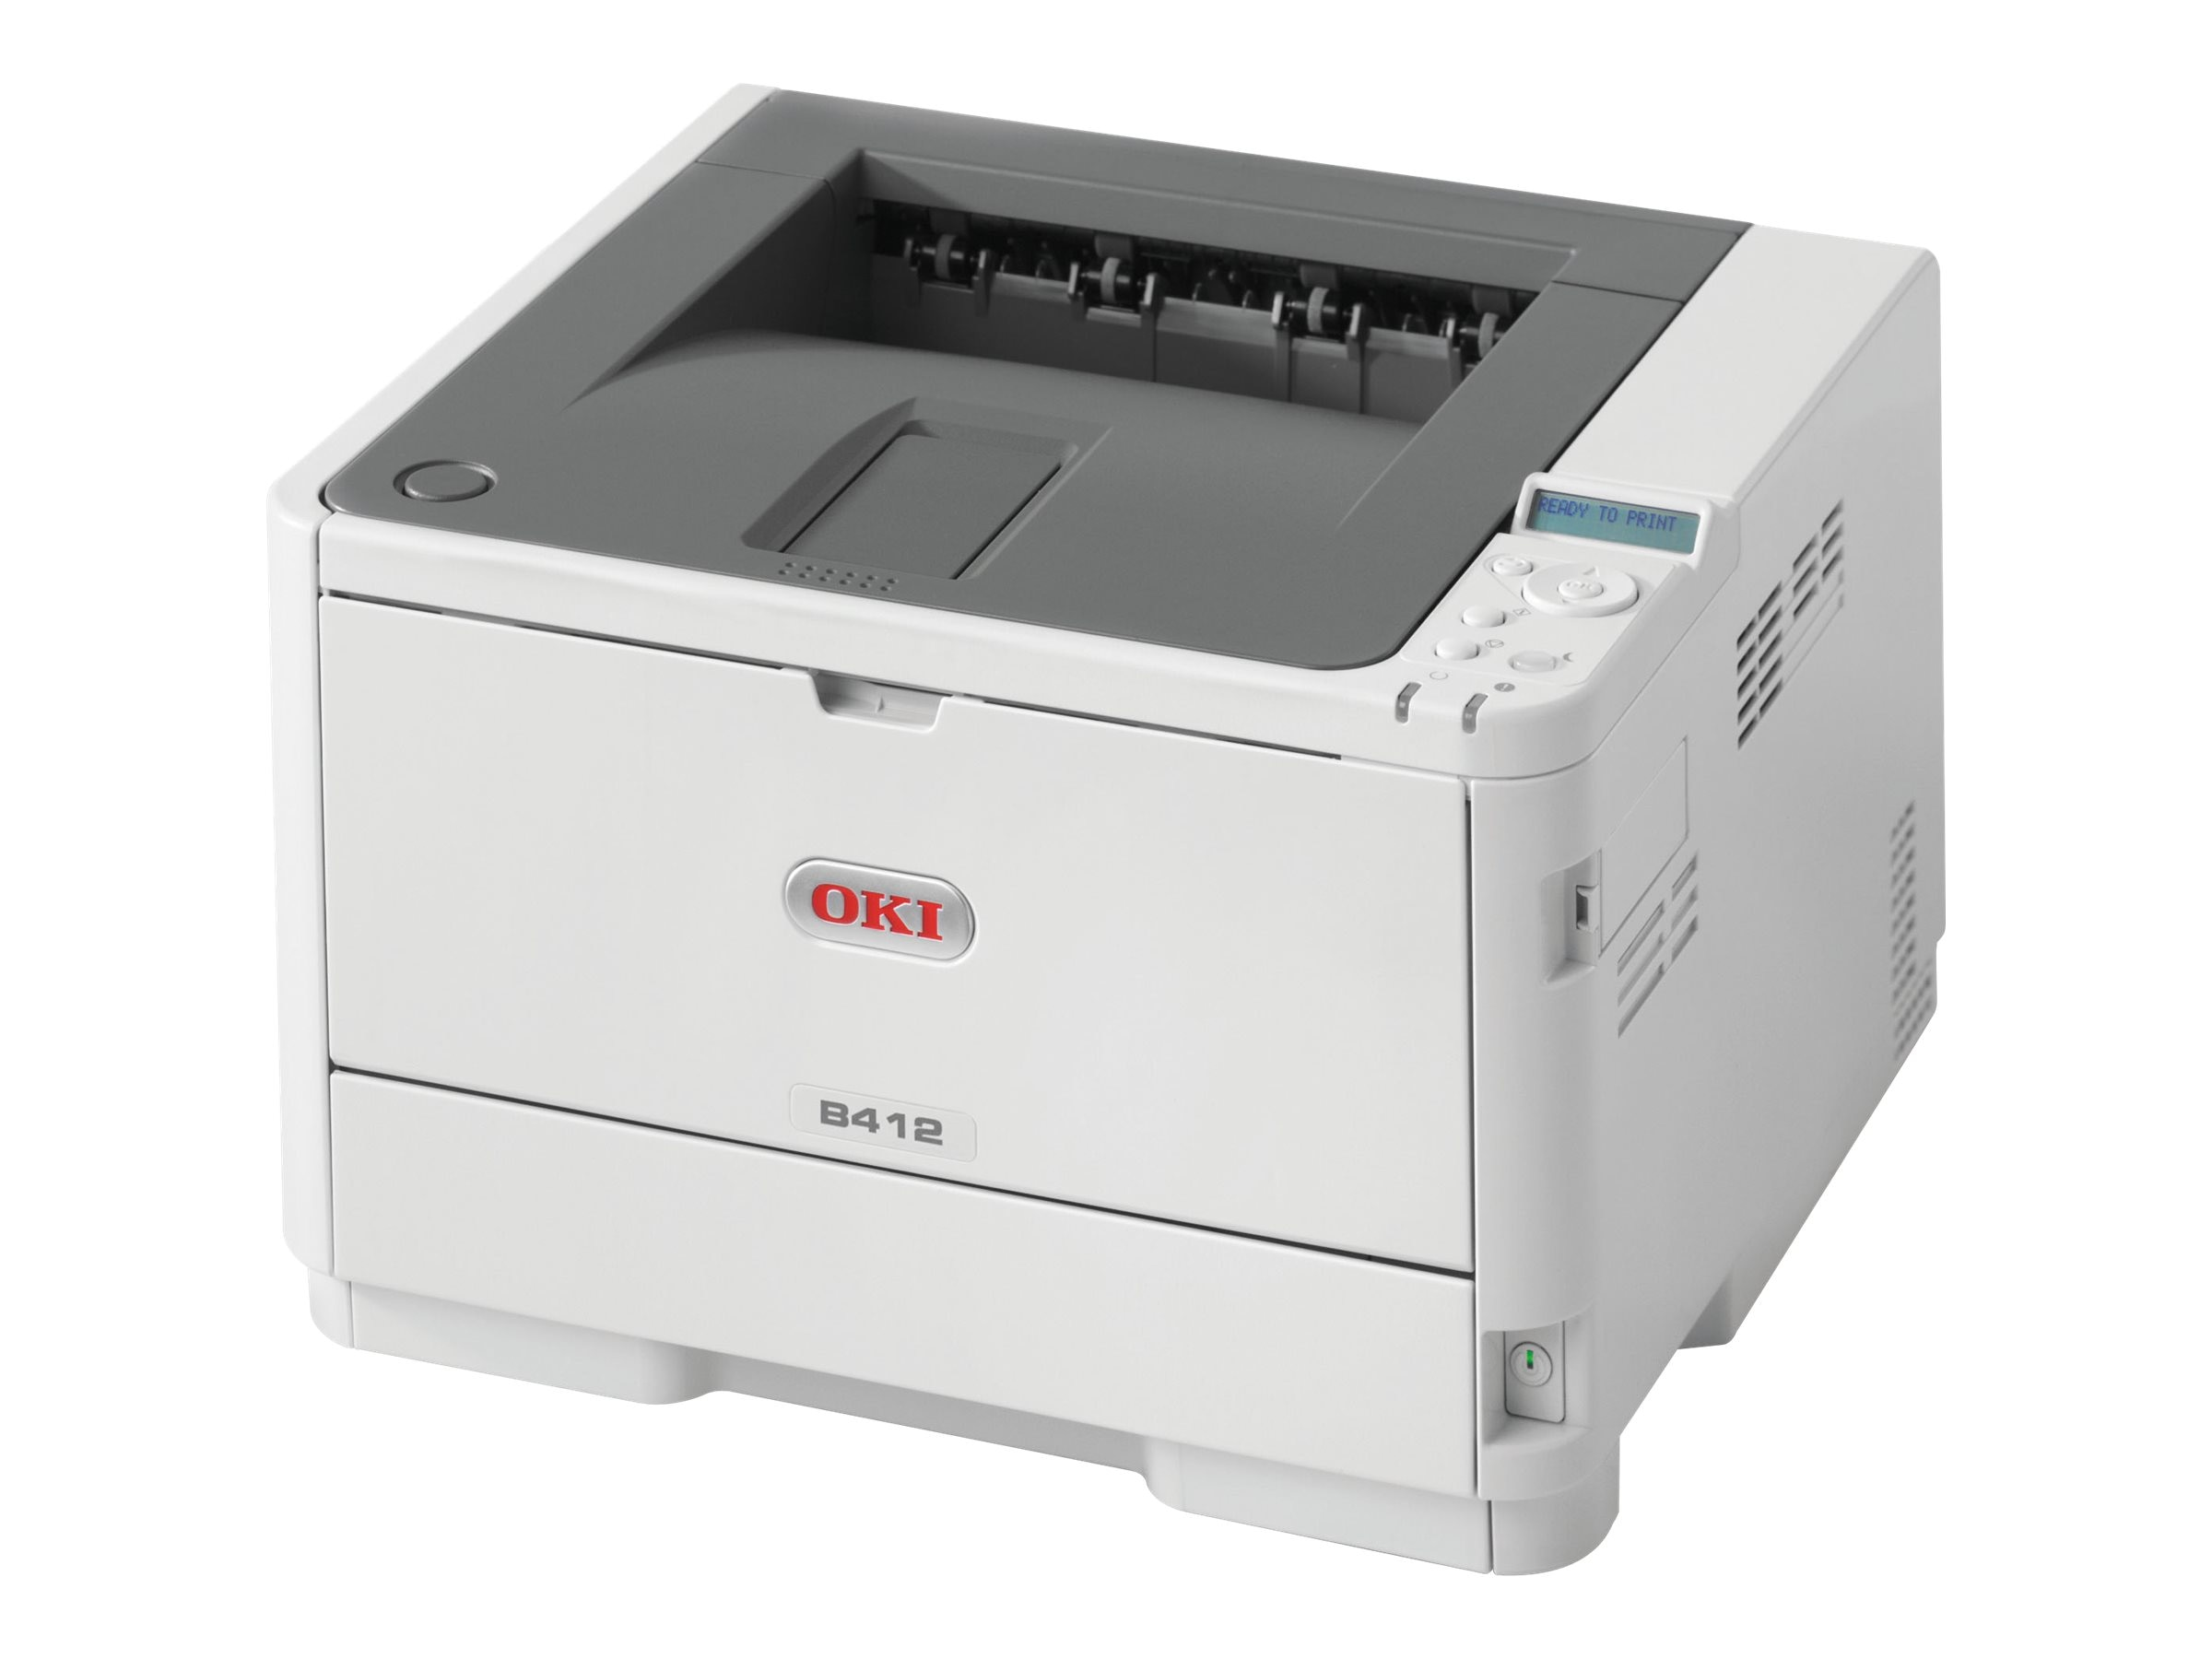 Oki B412dn Monochrome Printer, 62444301, 18226340, Printers - Laser & LED (monochrome)